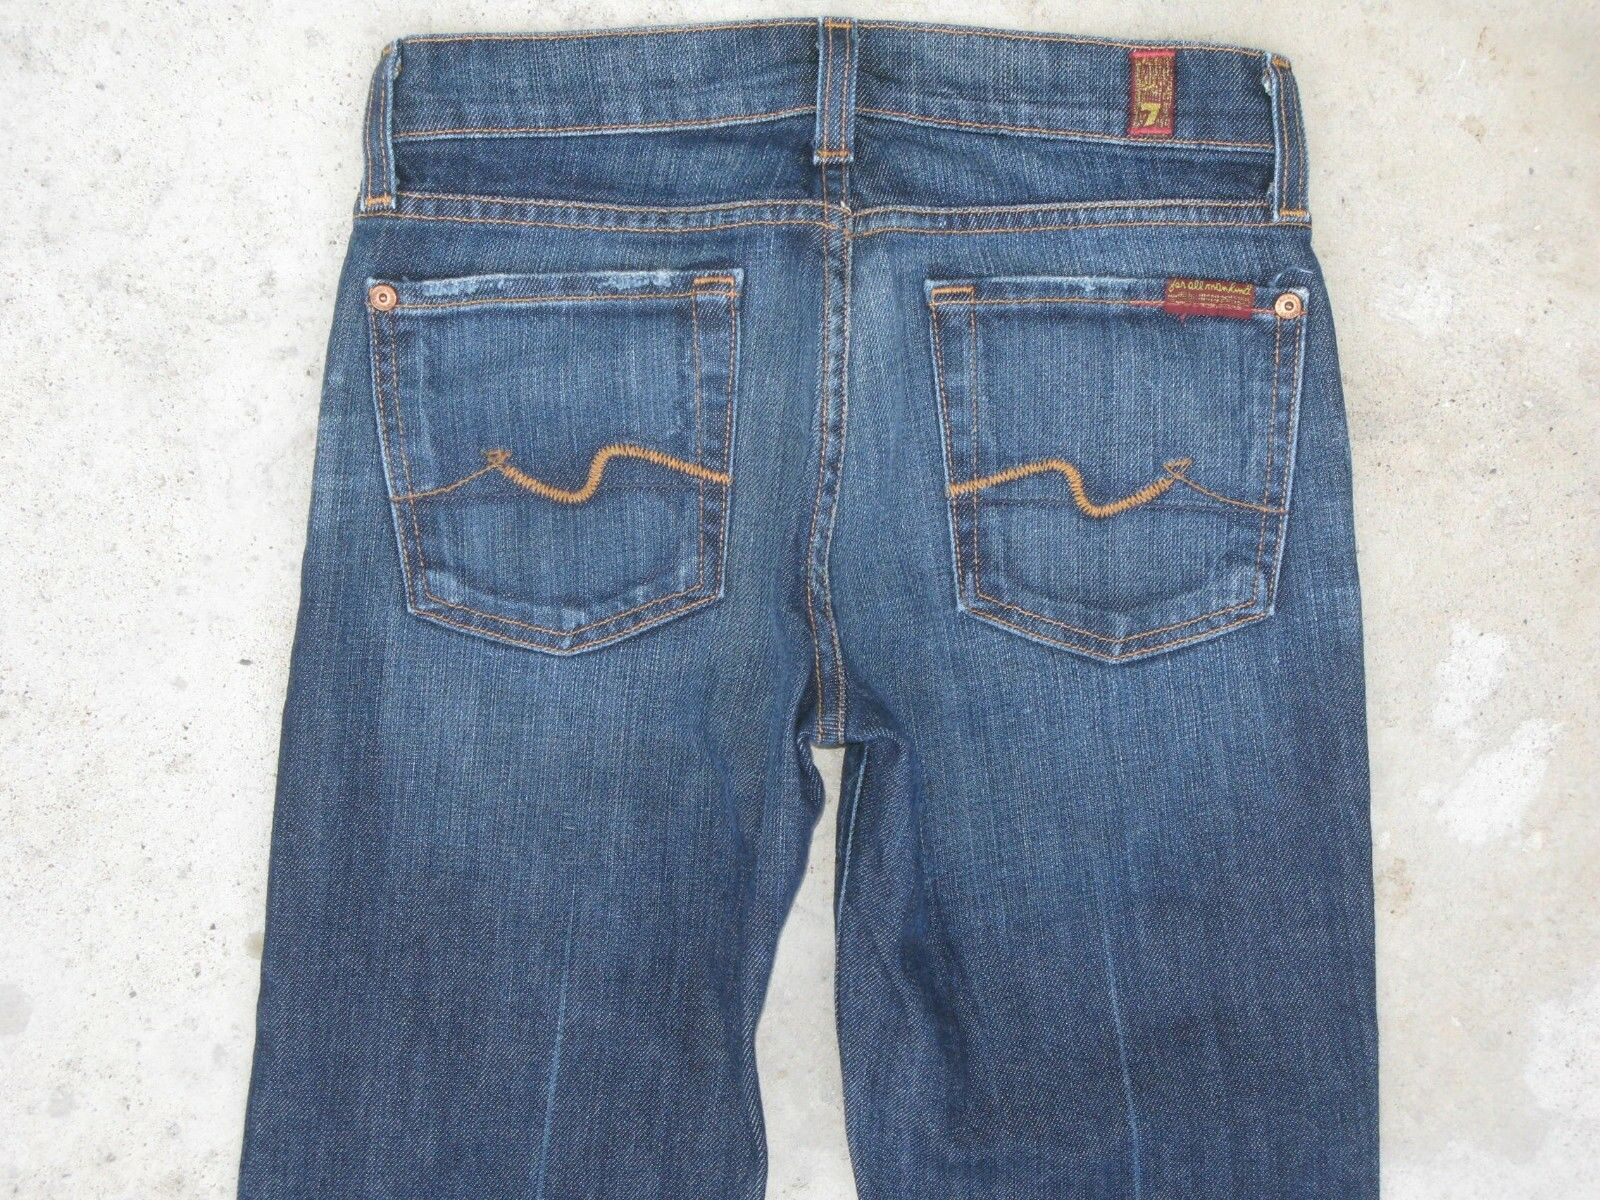 7 for all Mankind Womens Bootcut Jeans Dark Distressed Wash Sz 23